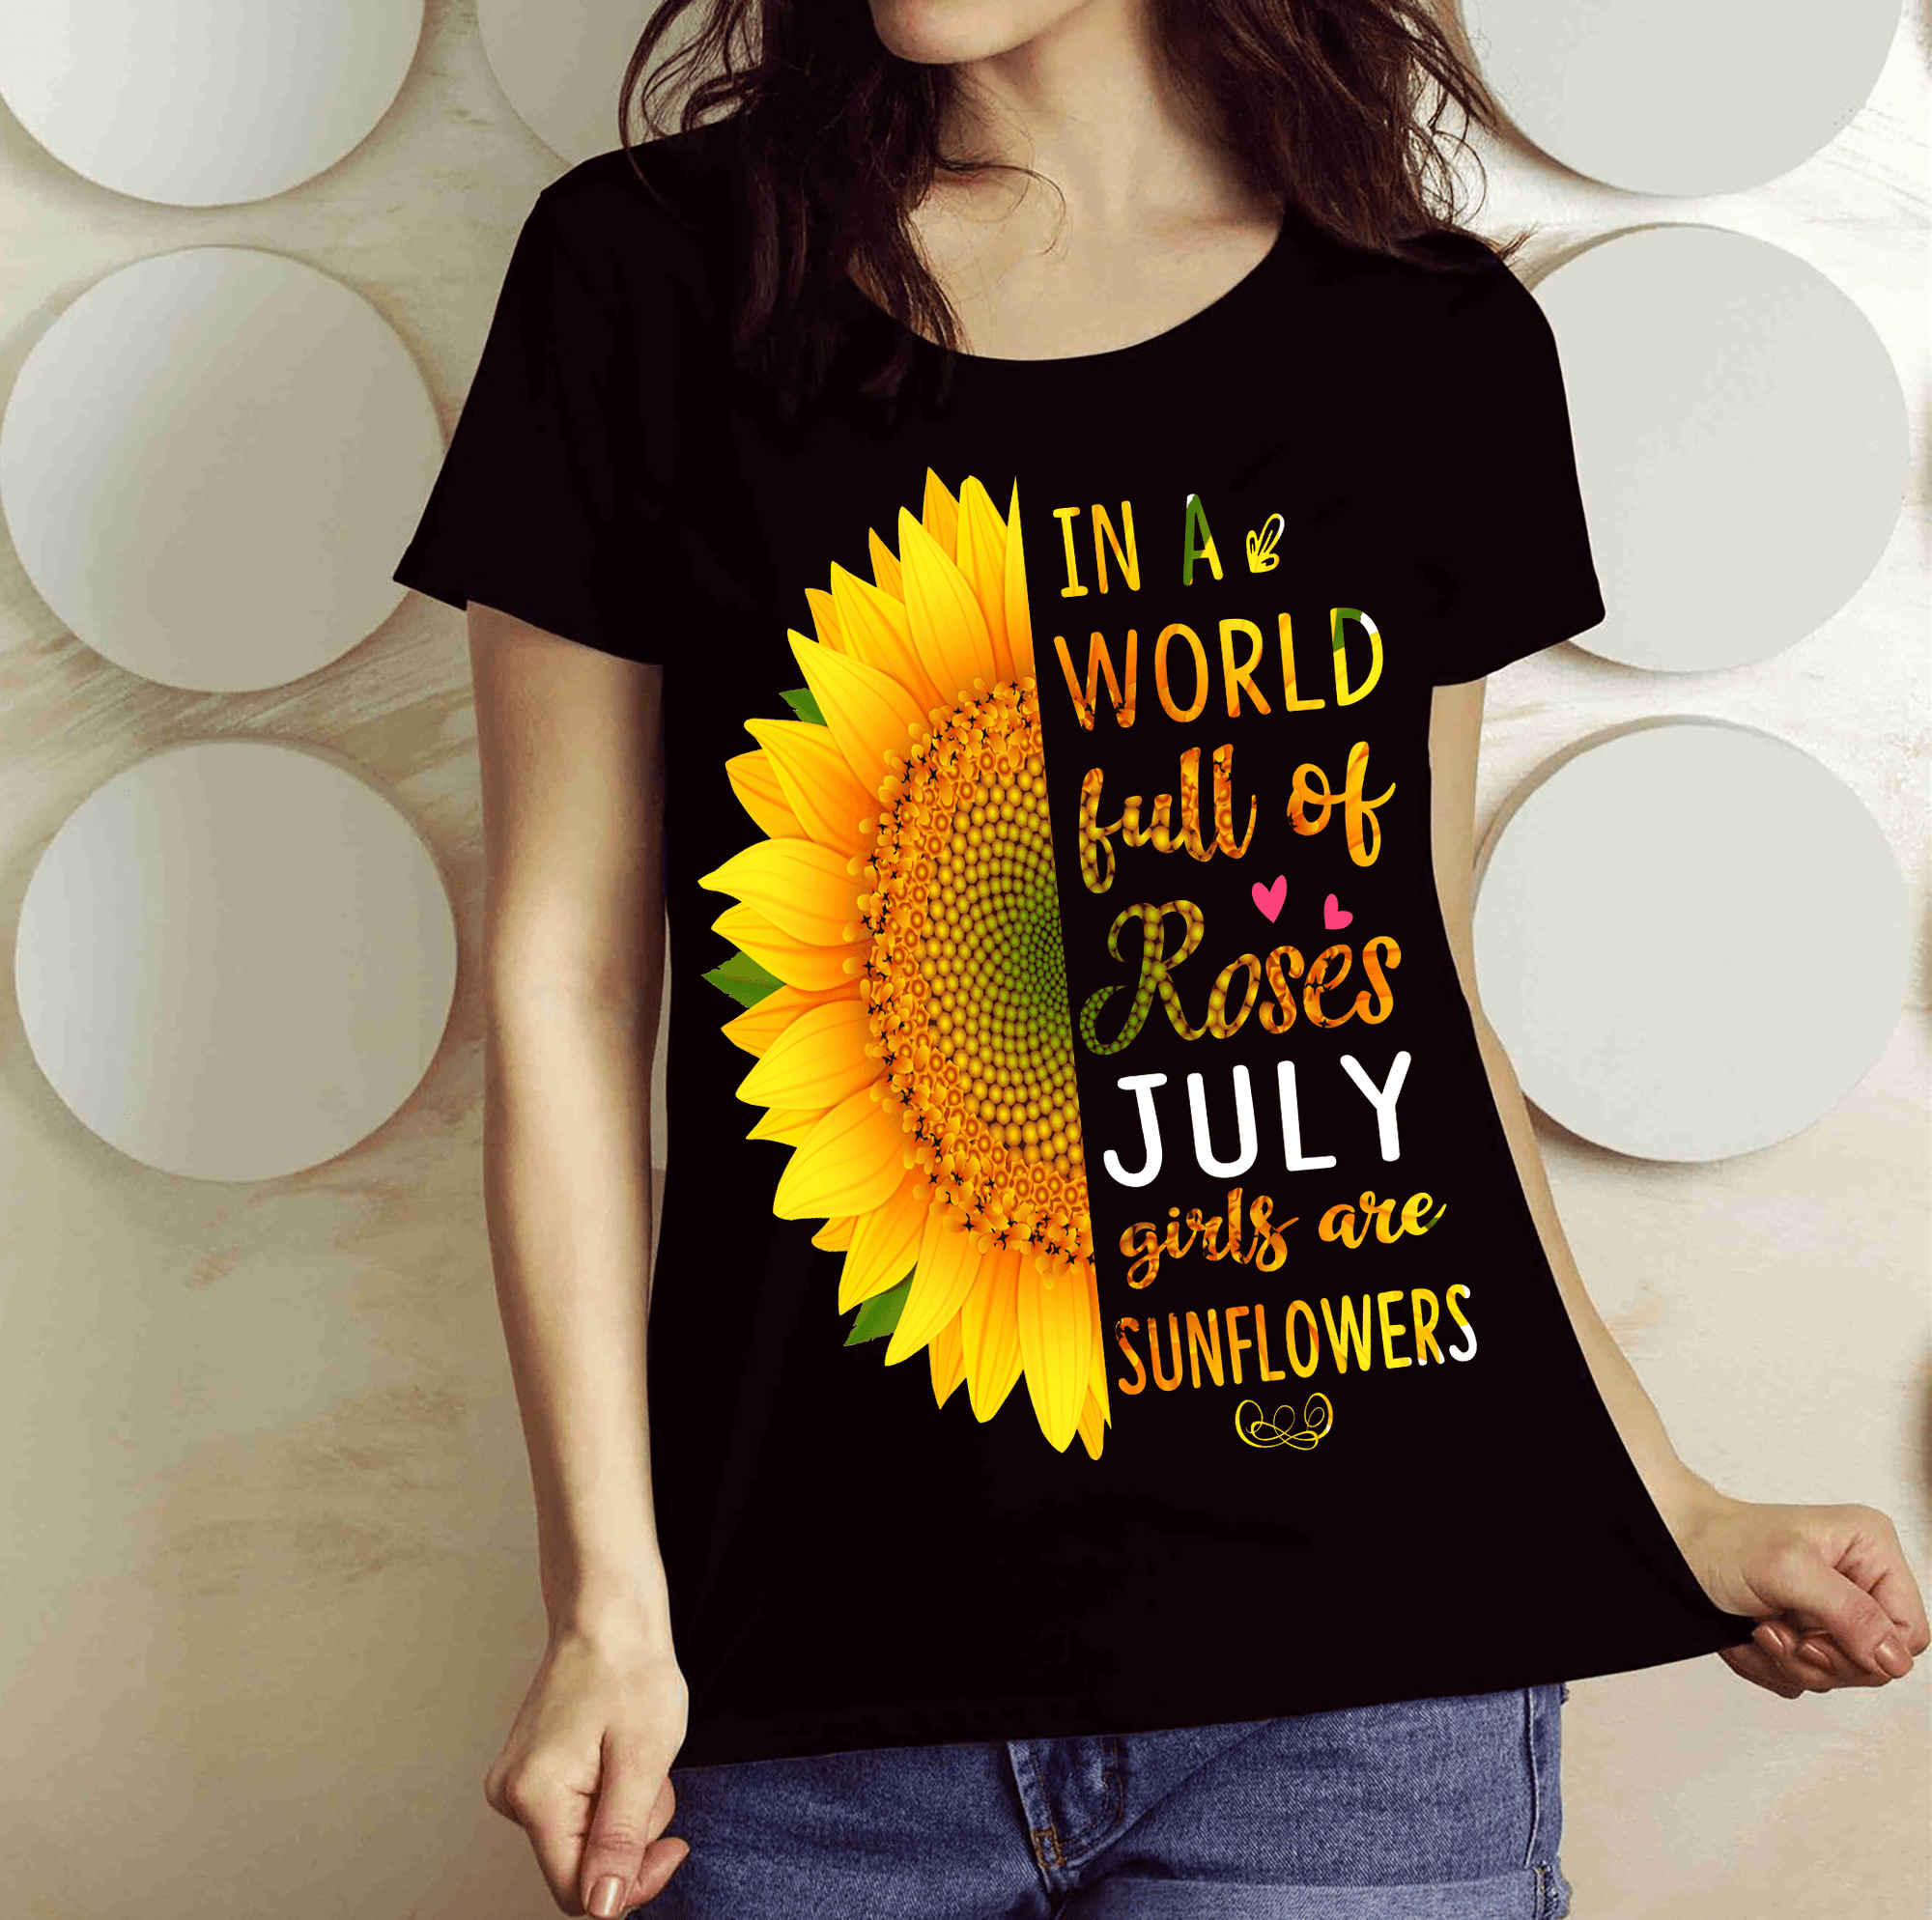 """In A World Full Of Roses July Girls are Sunflowers"" FLAT SHIPPING (Special Discount) - LA Shirt Company"